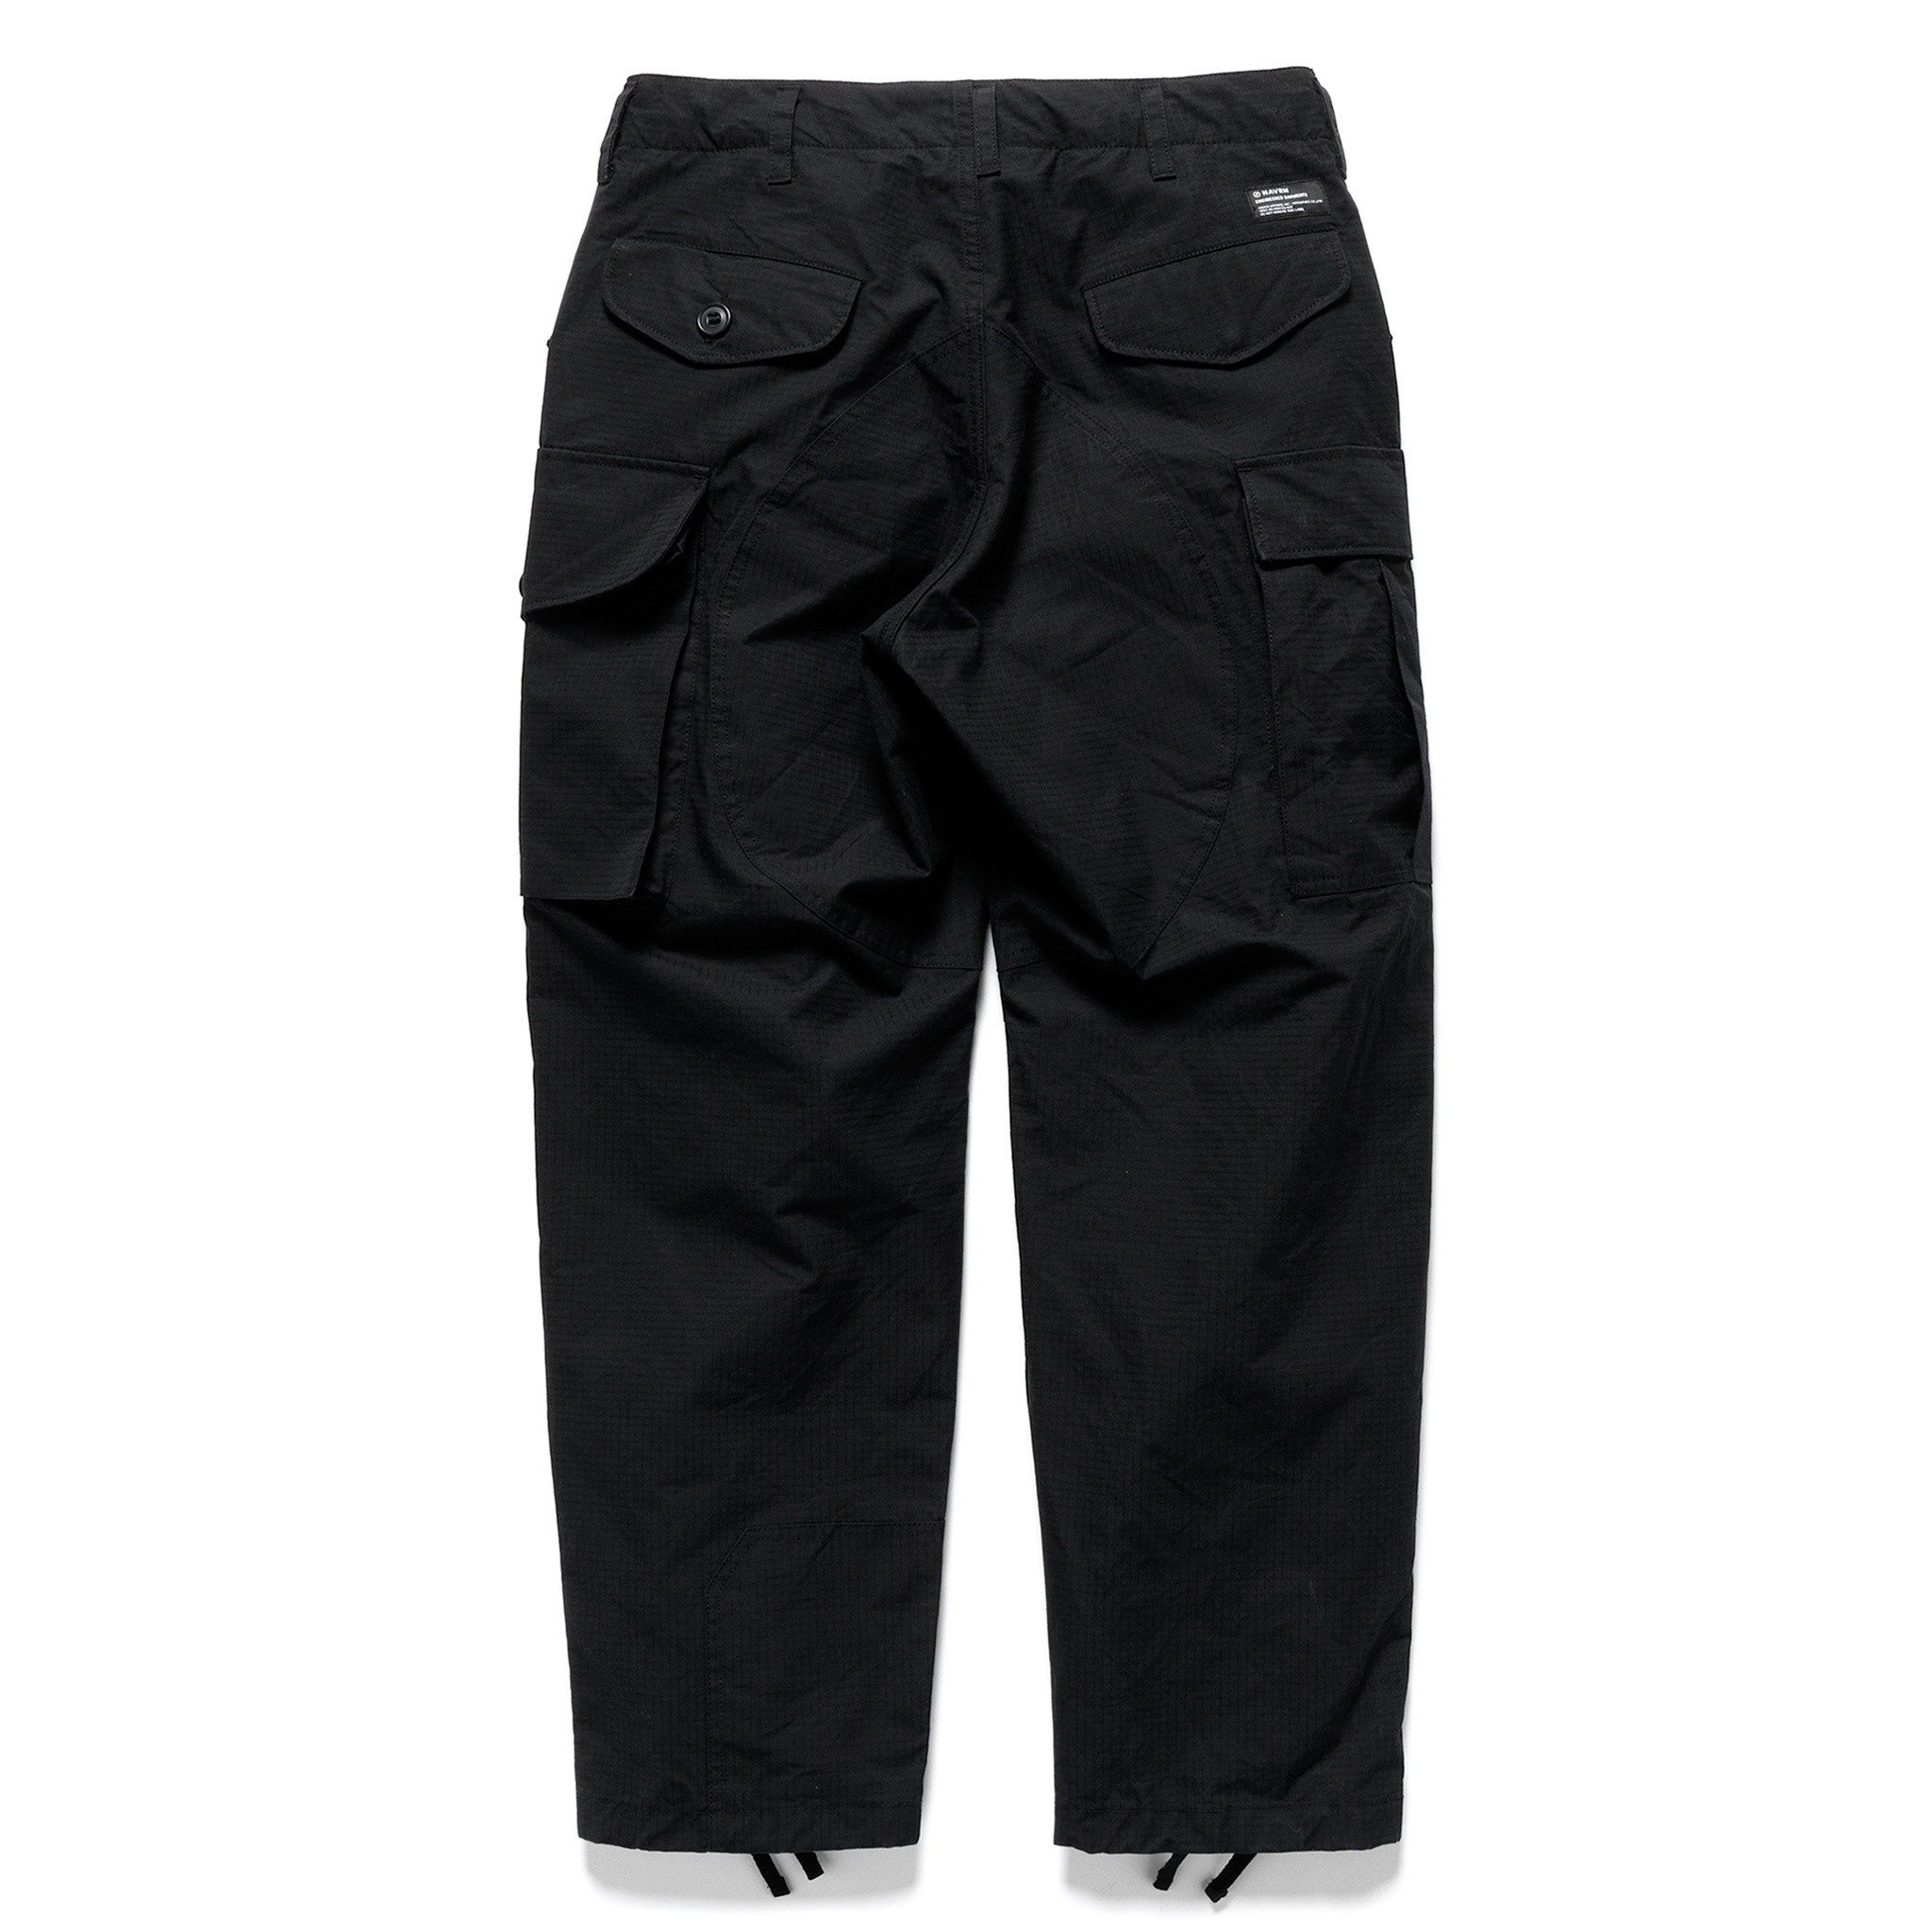 Engineered Garments BDU Pant for HAVEN - Black Ventile Ripstop